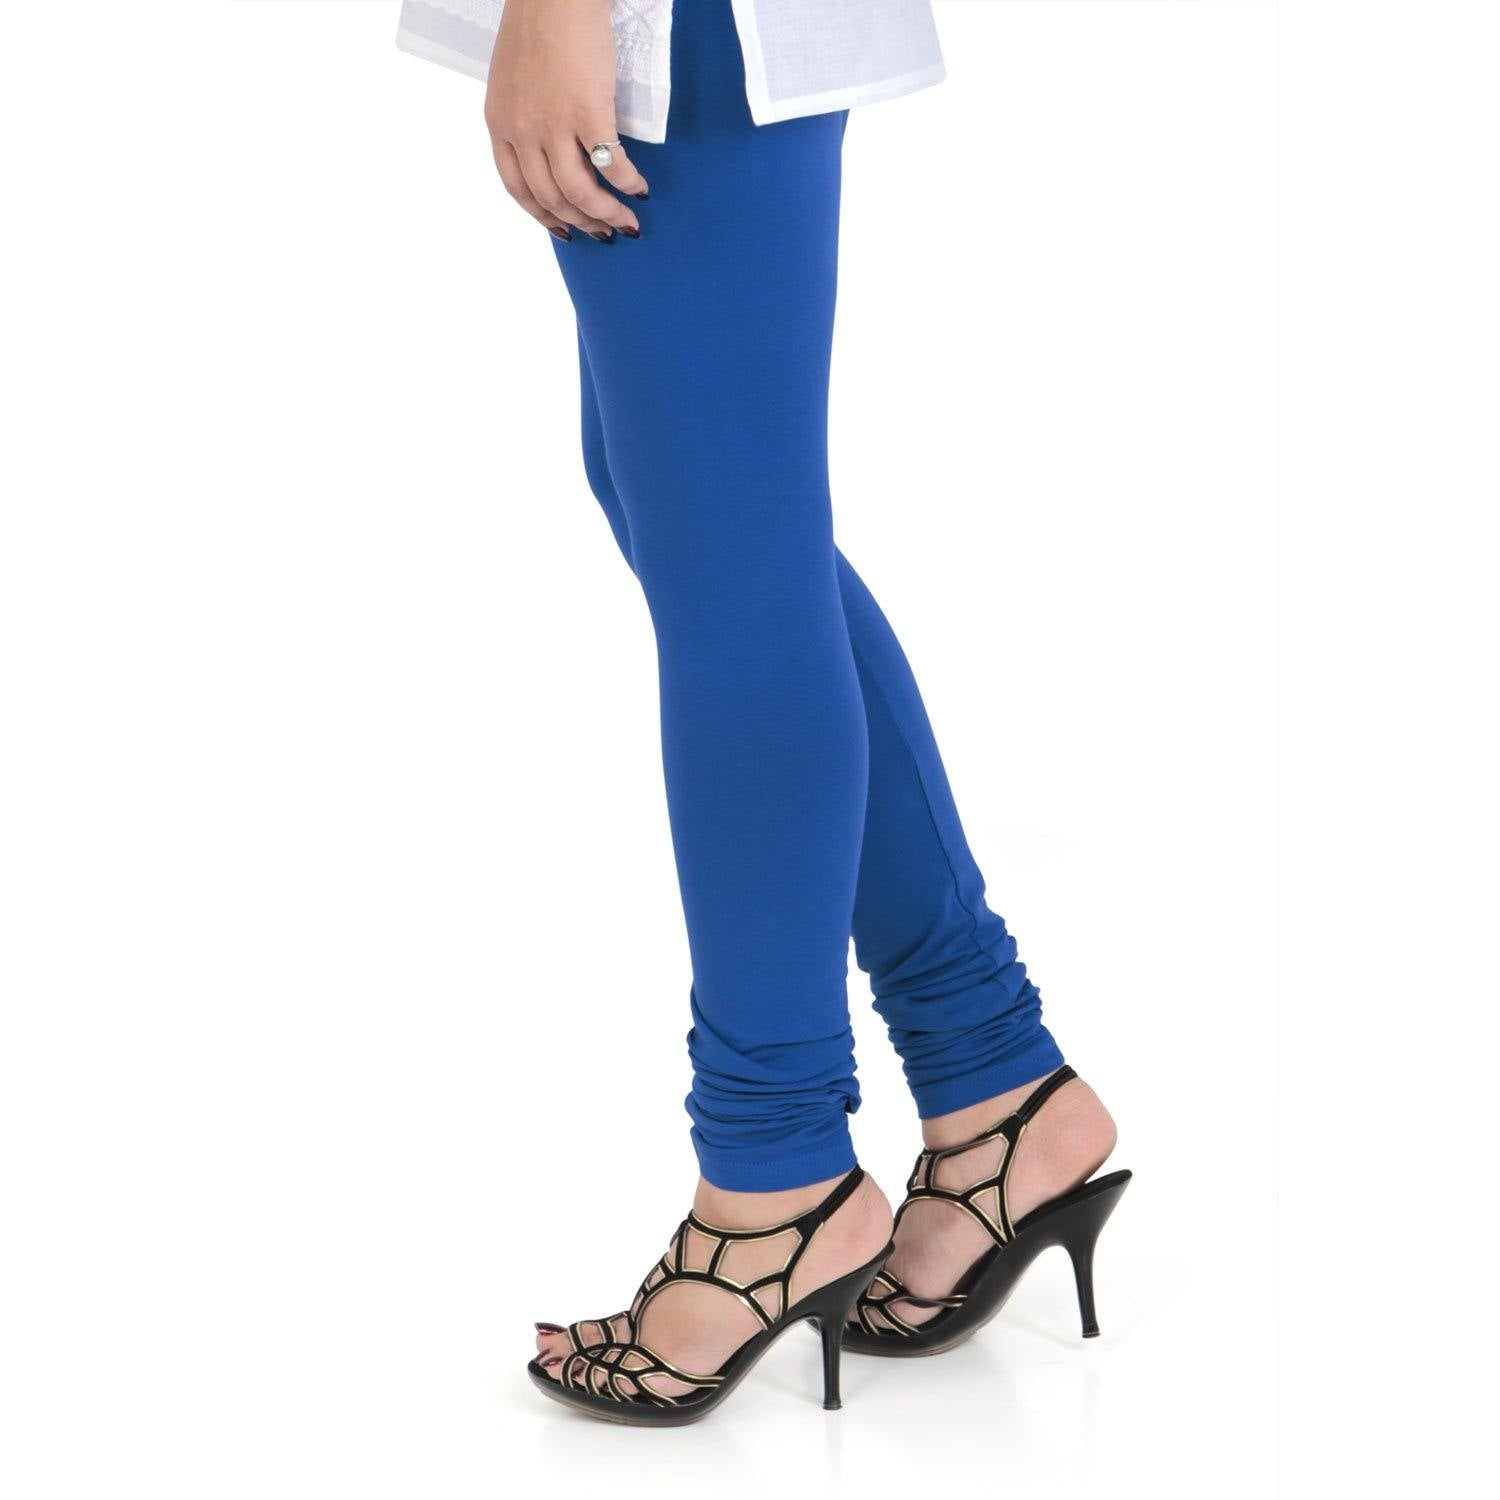 Vami Women's Cotton Stretchable Churidar Legging - True Blue